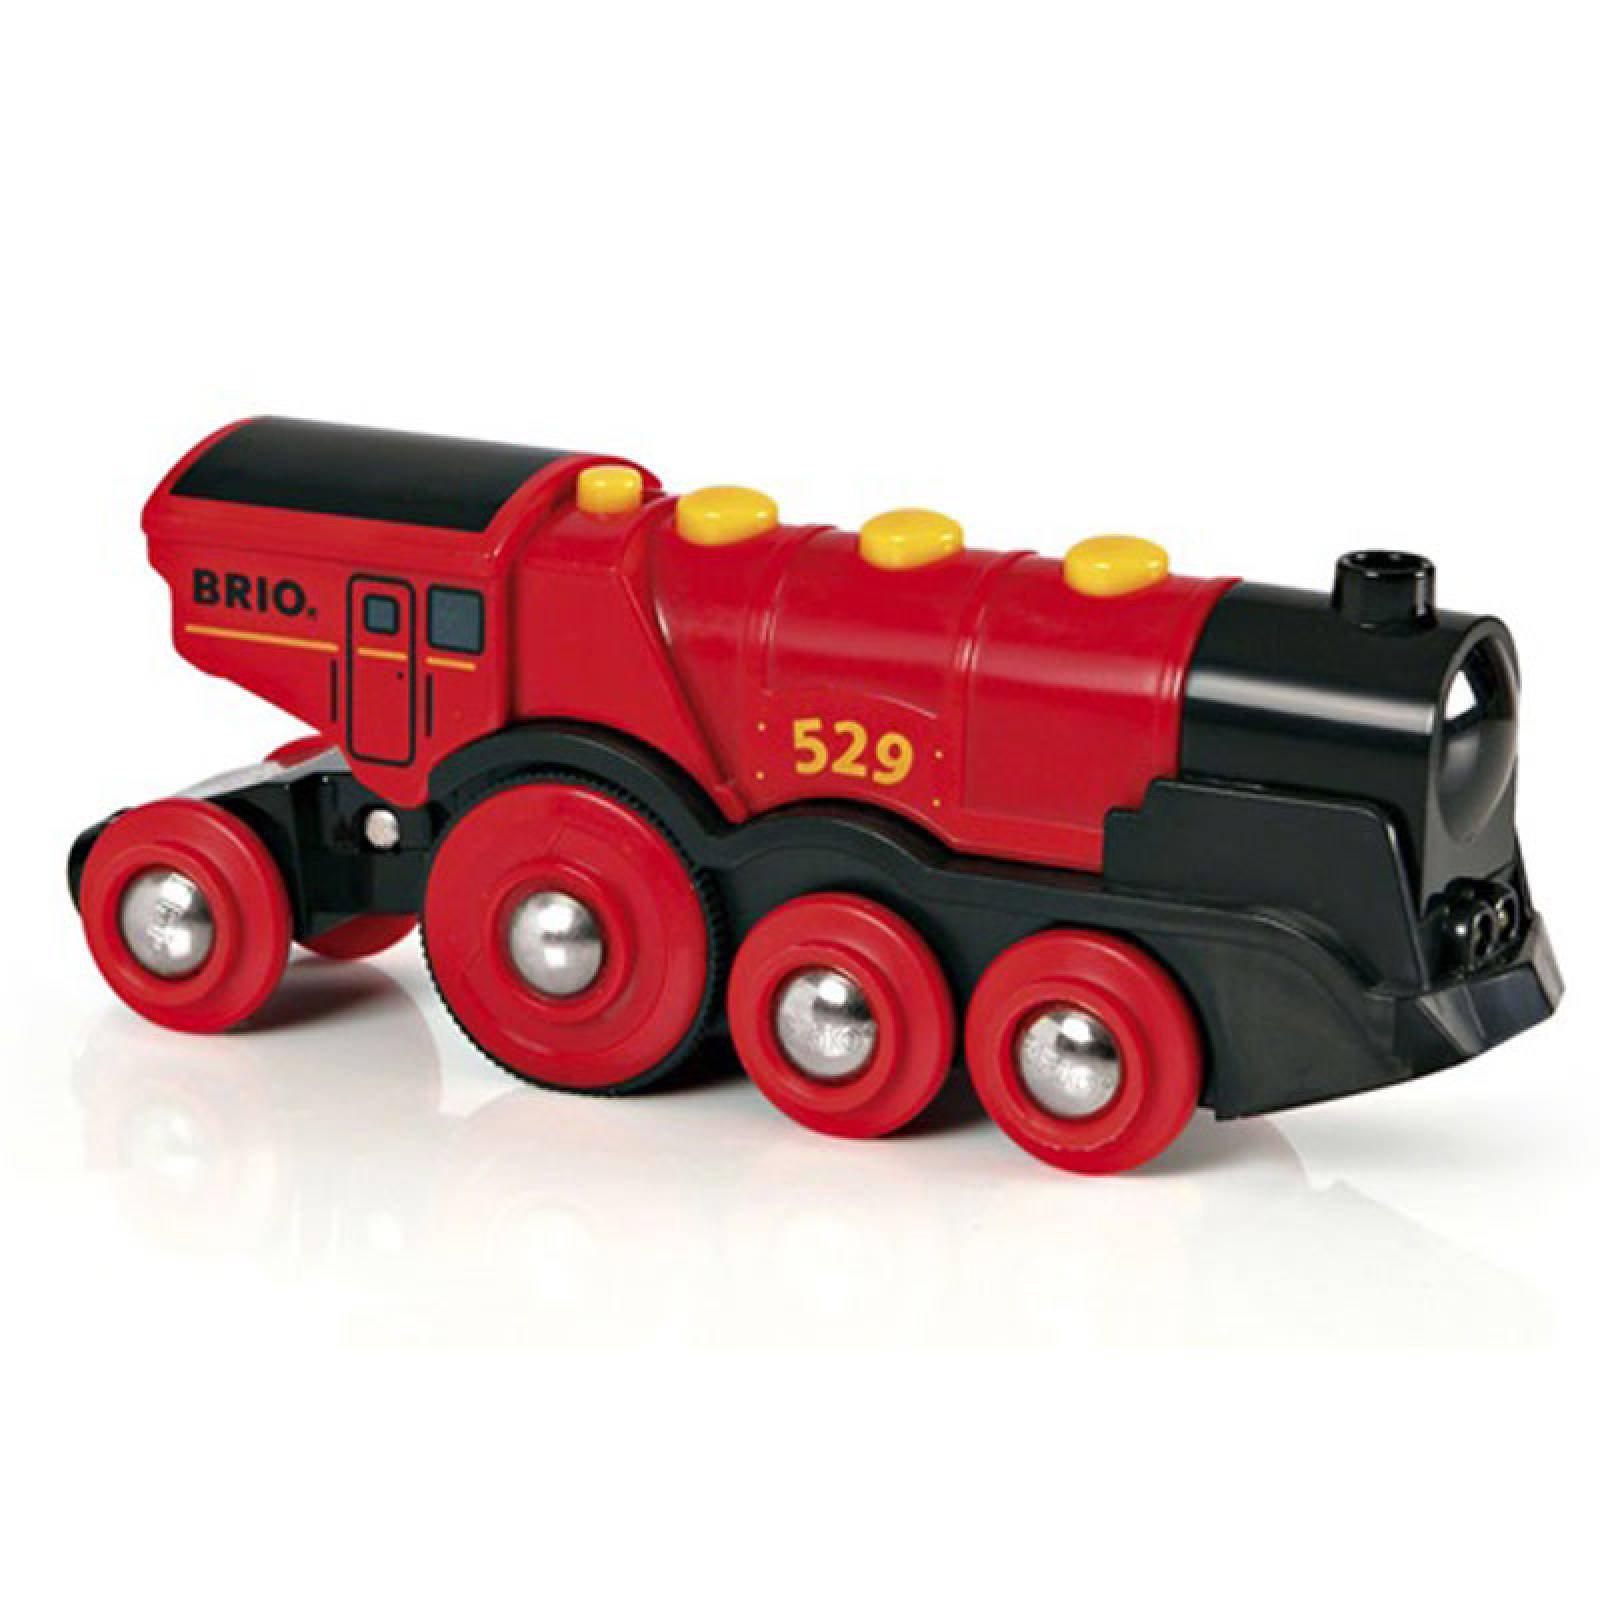 Mighty Red Action Locomotive Train BRIO Wooden Railway Age 3+ thumbnails